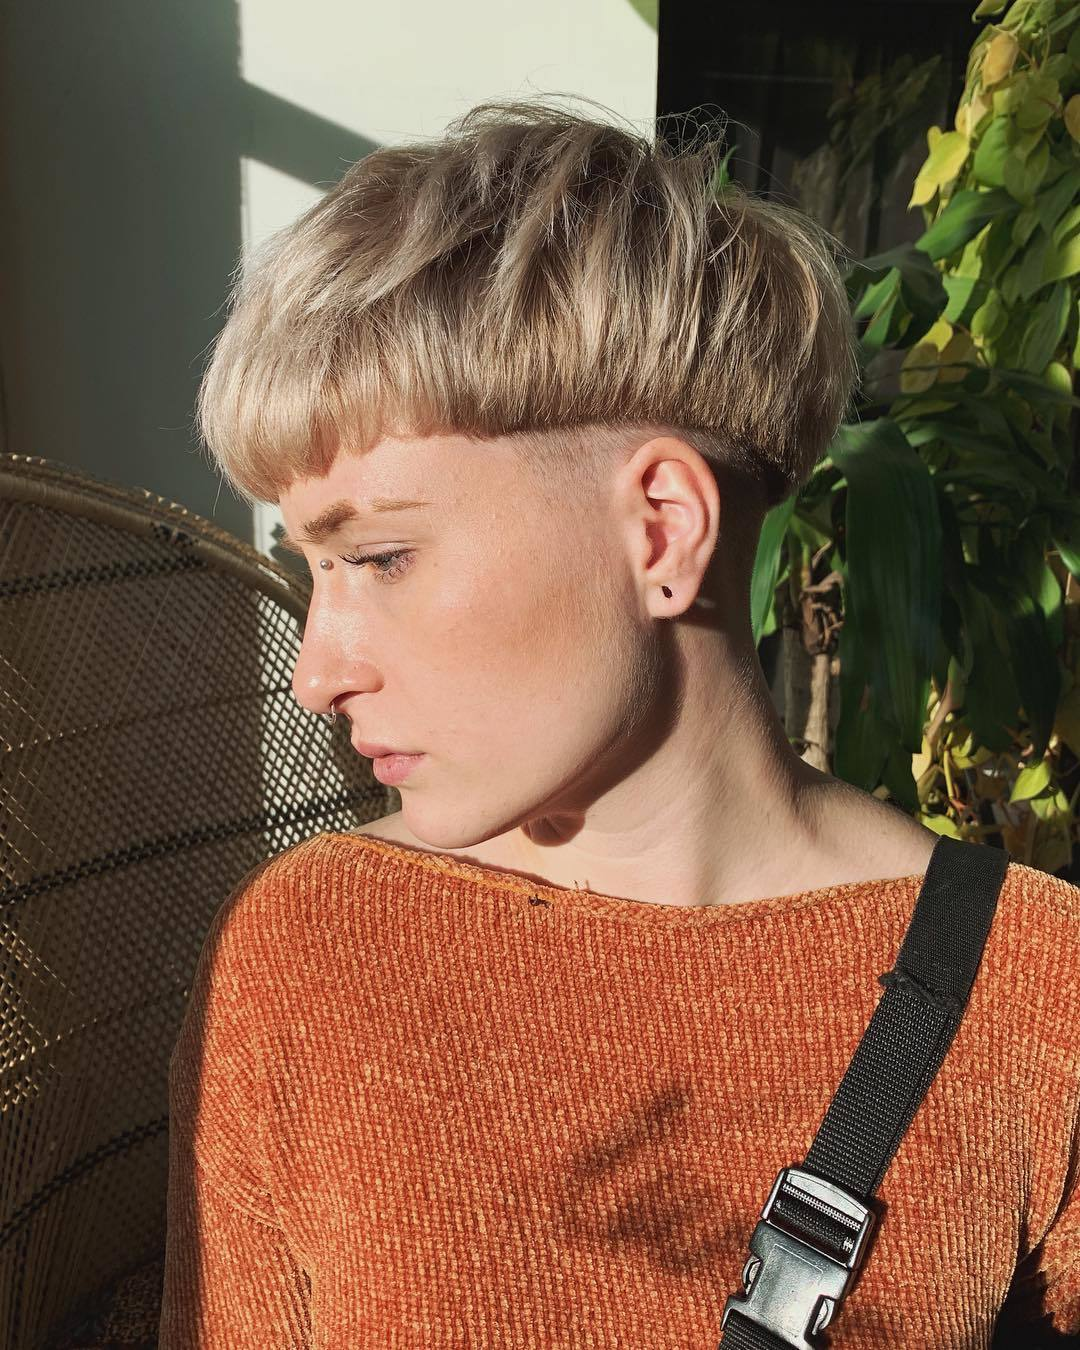 18 Best Mushroom And Bowl Cut Hairstyles For Women In 2020